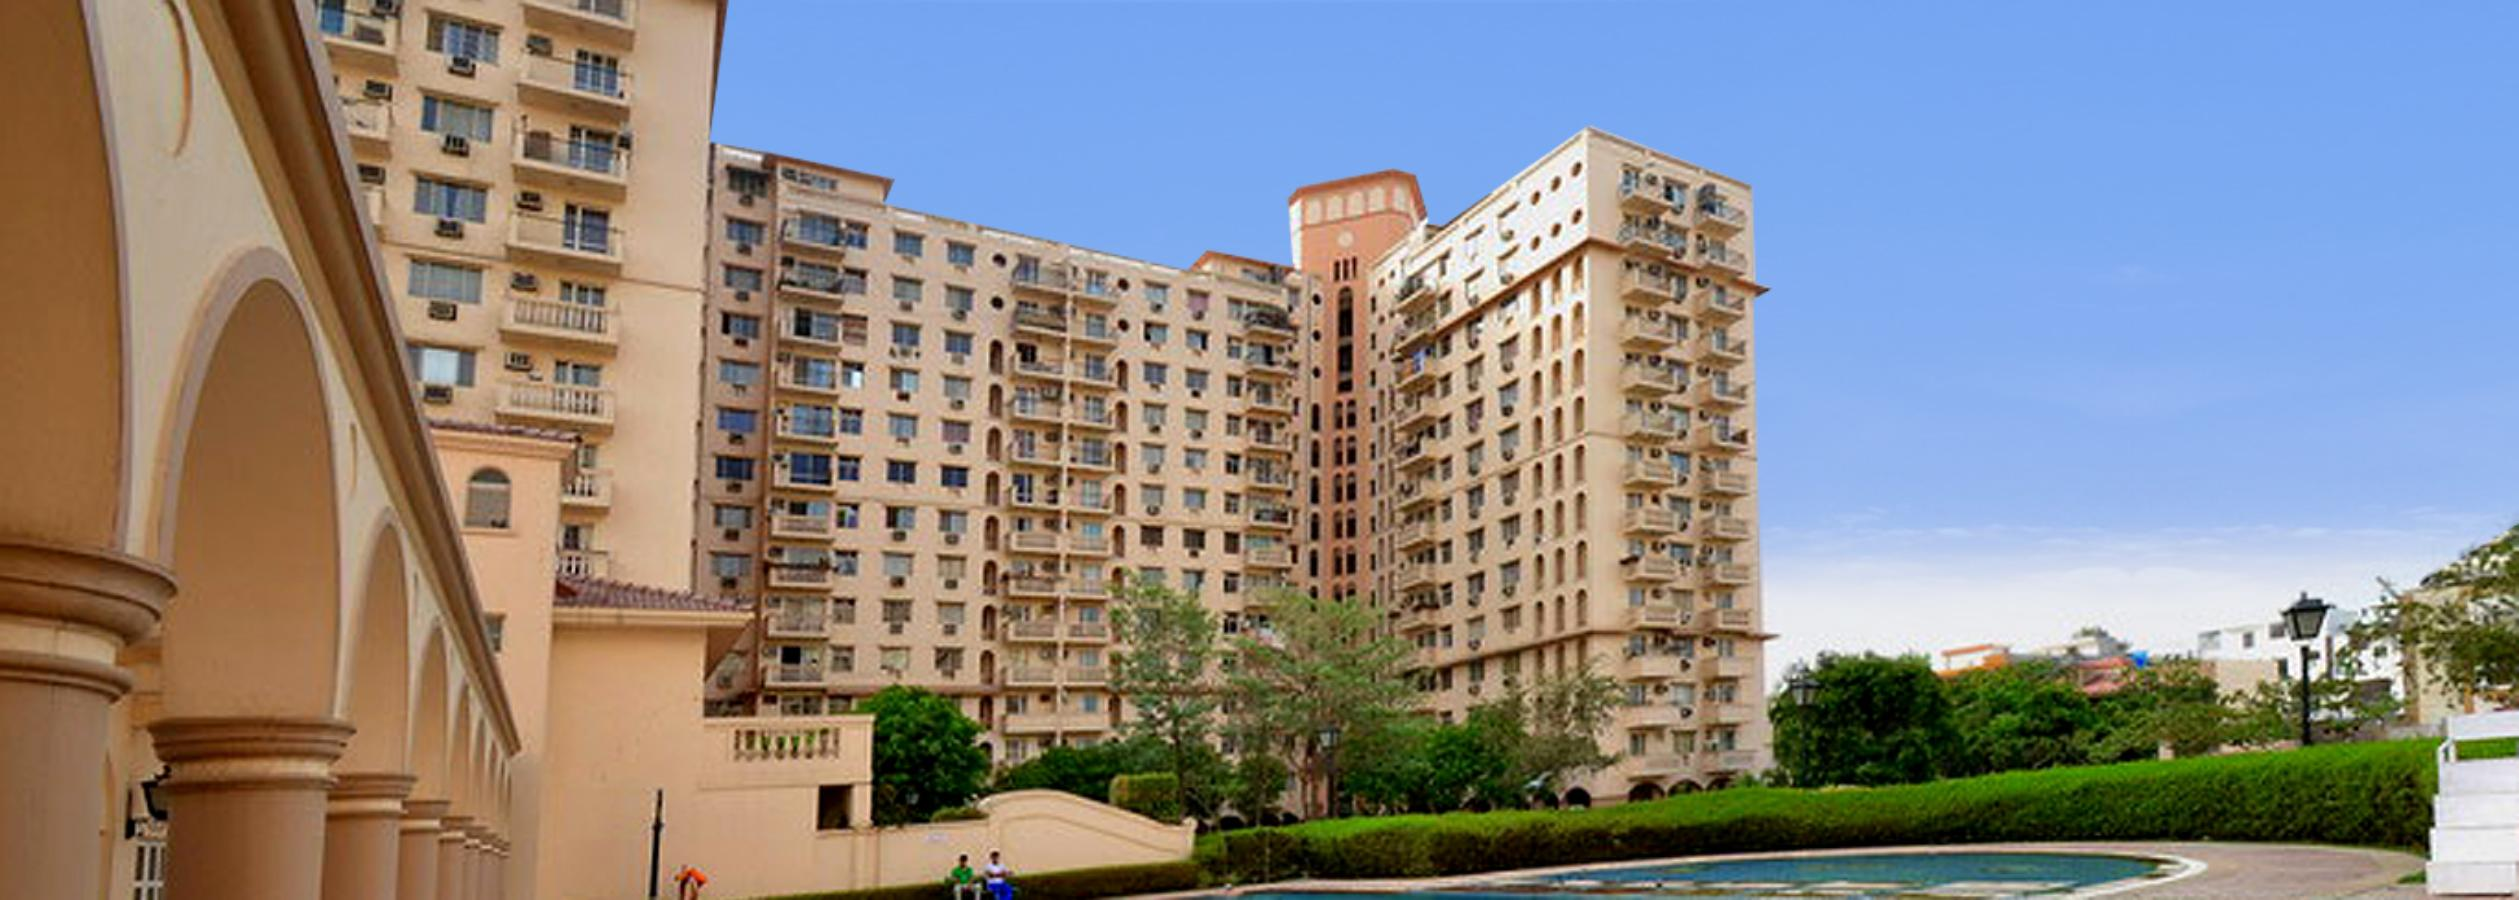 Oakwood Estate in DLF City Phase 2 Gurgaon by DLF Group